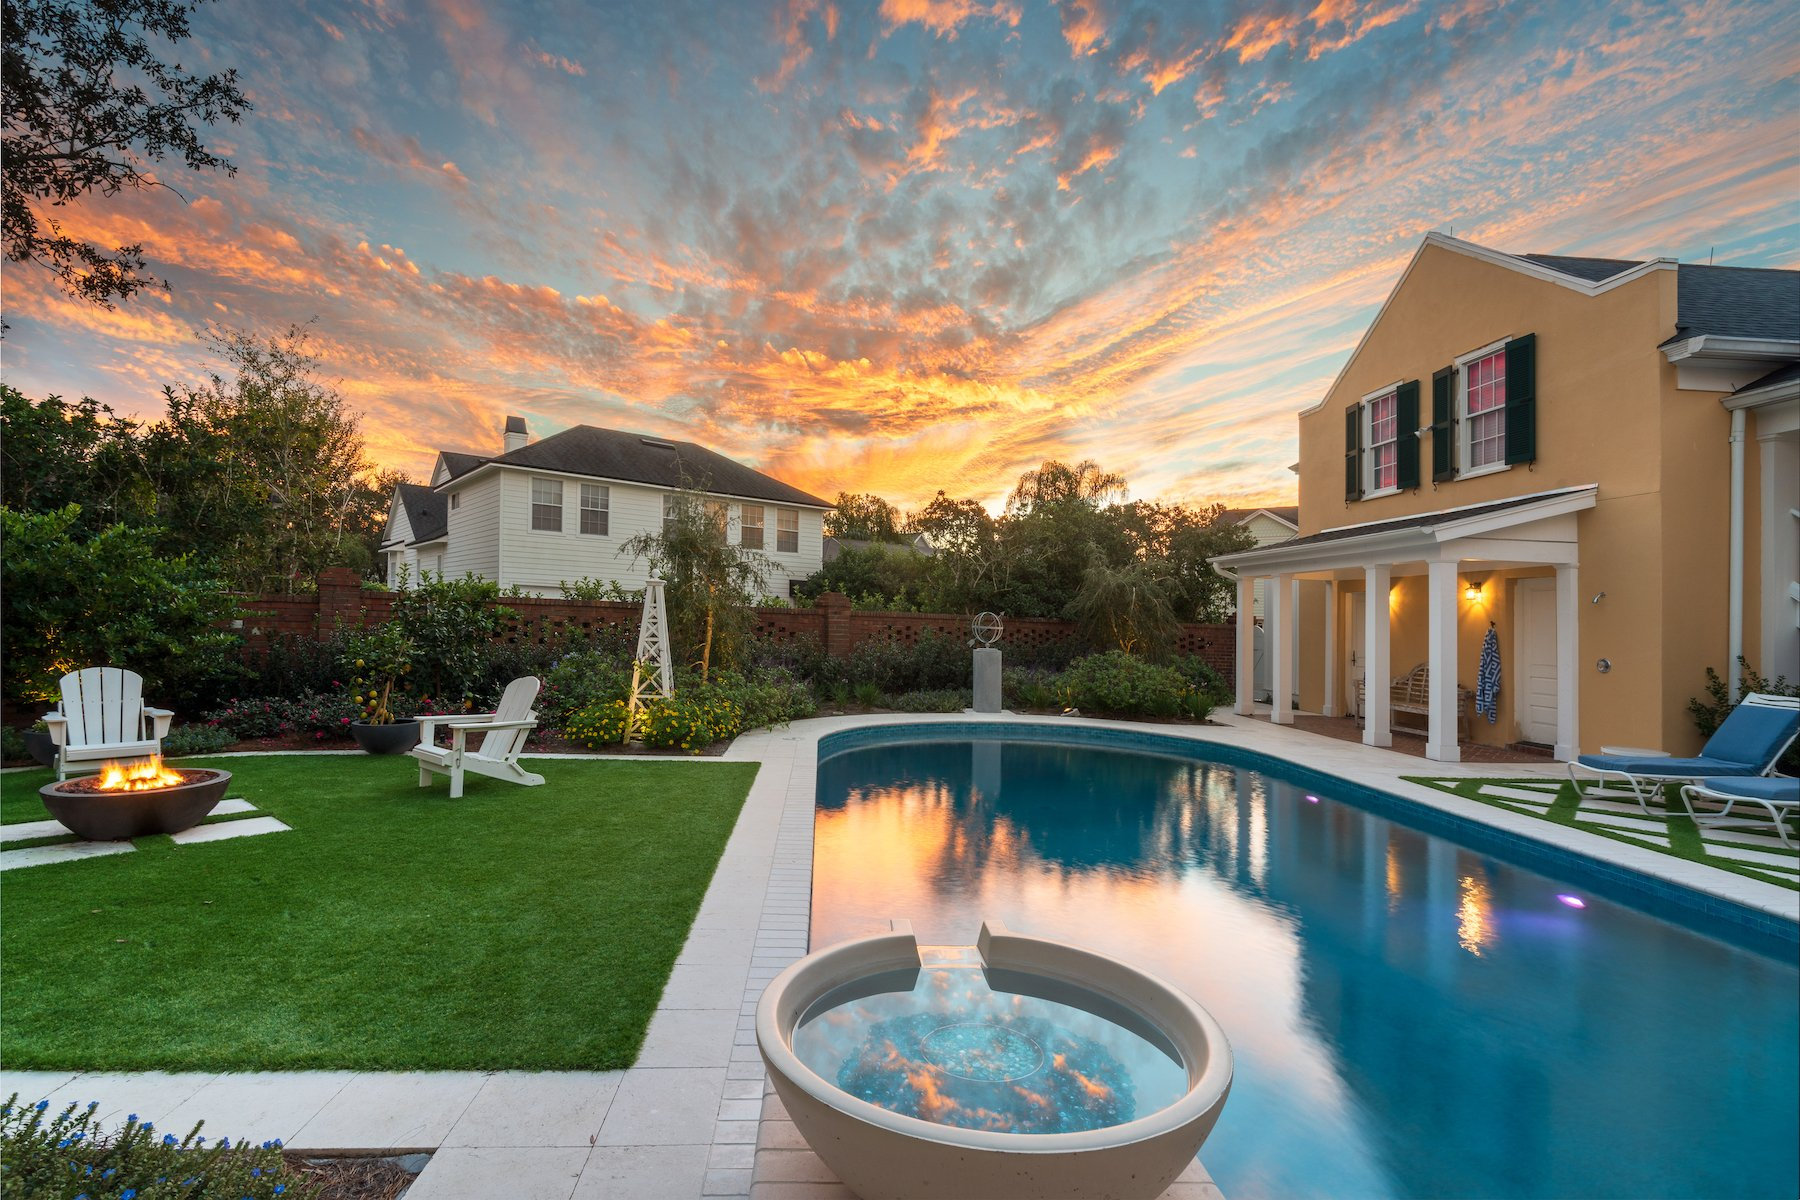 Elegant backyard with pool and artificial turf sating area